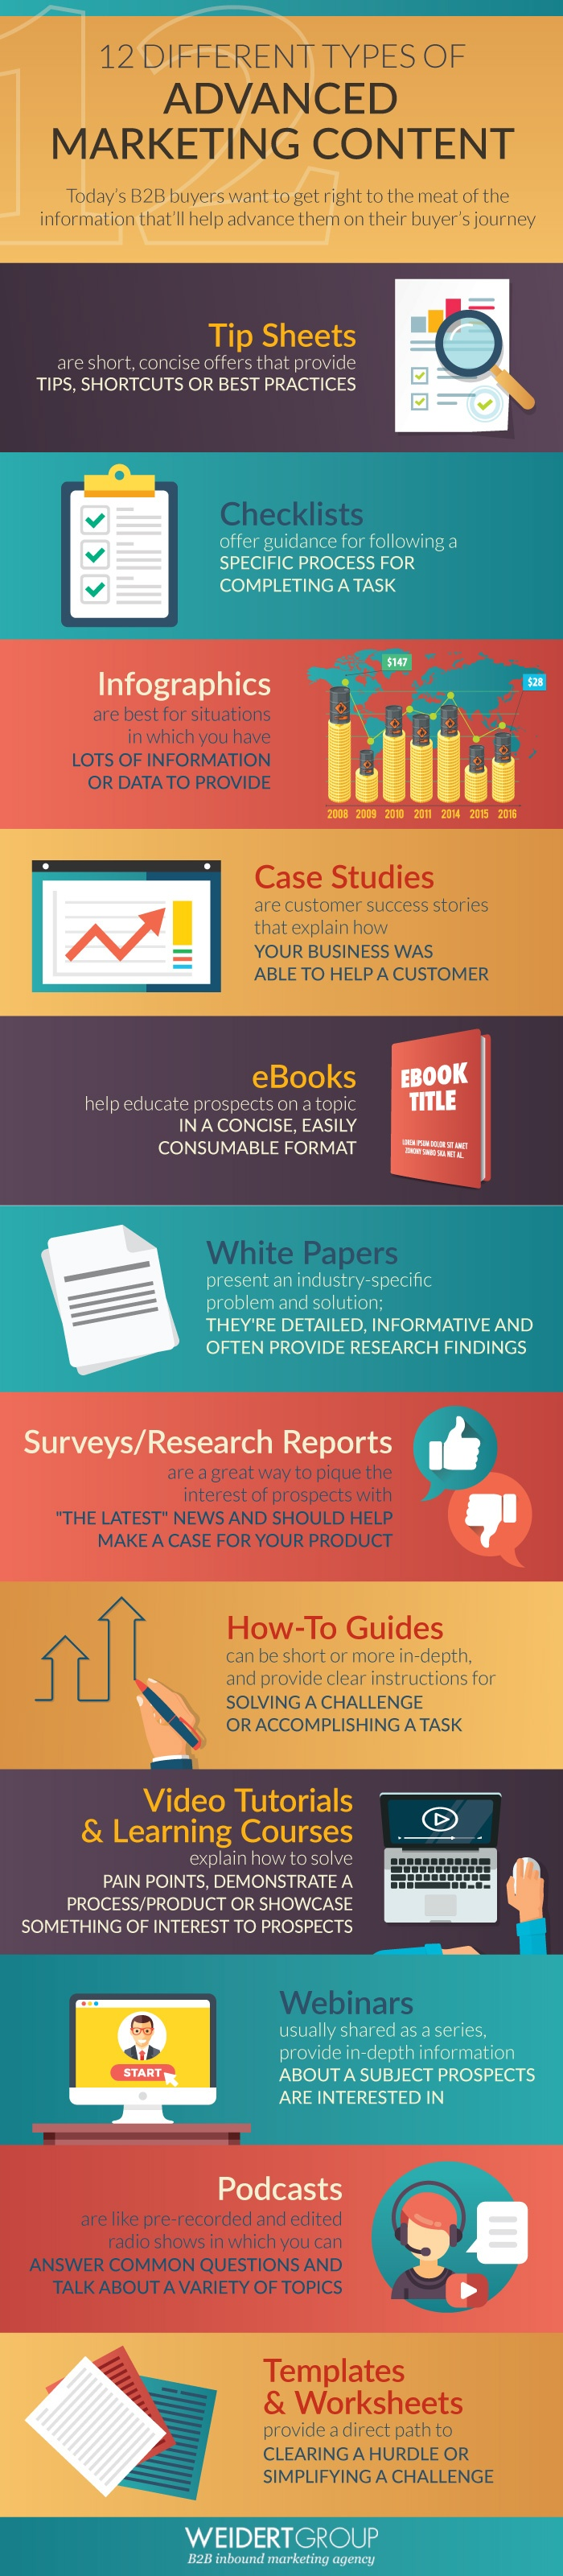 12 different types of advanced marketing content infographic